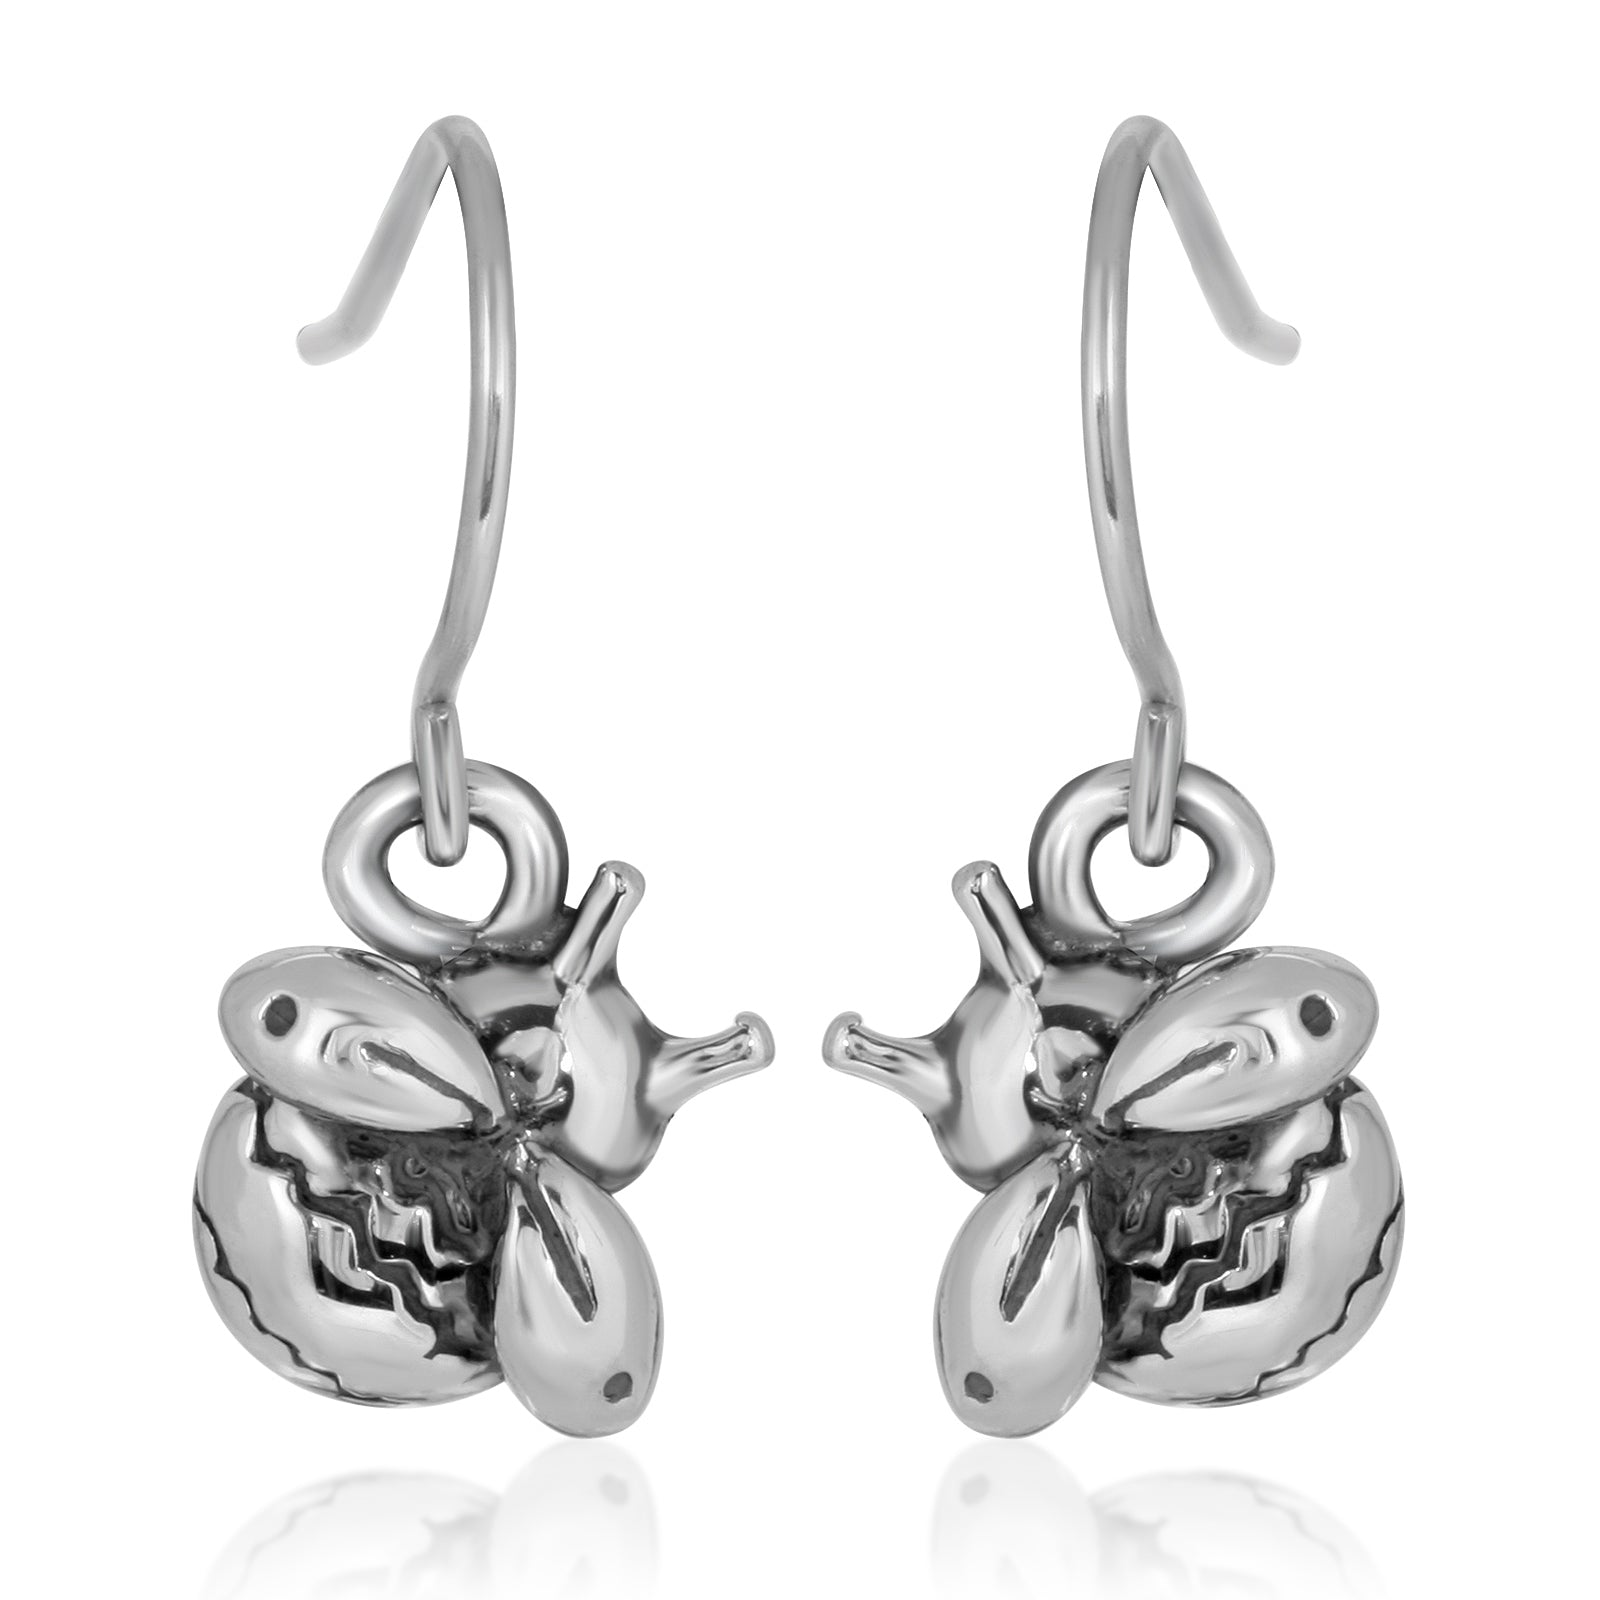 The W brothers Monsterz Collection featuring our handcrafted Bumblebee Earrings, designed from premium Grade A 925 Sterling Silver, perfect for a fashionable & cute look for men and women. Available in silver, gold and rose gold at www.thewbros.com